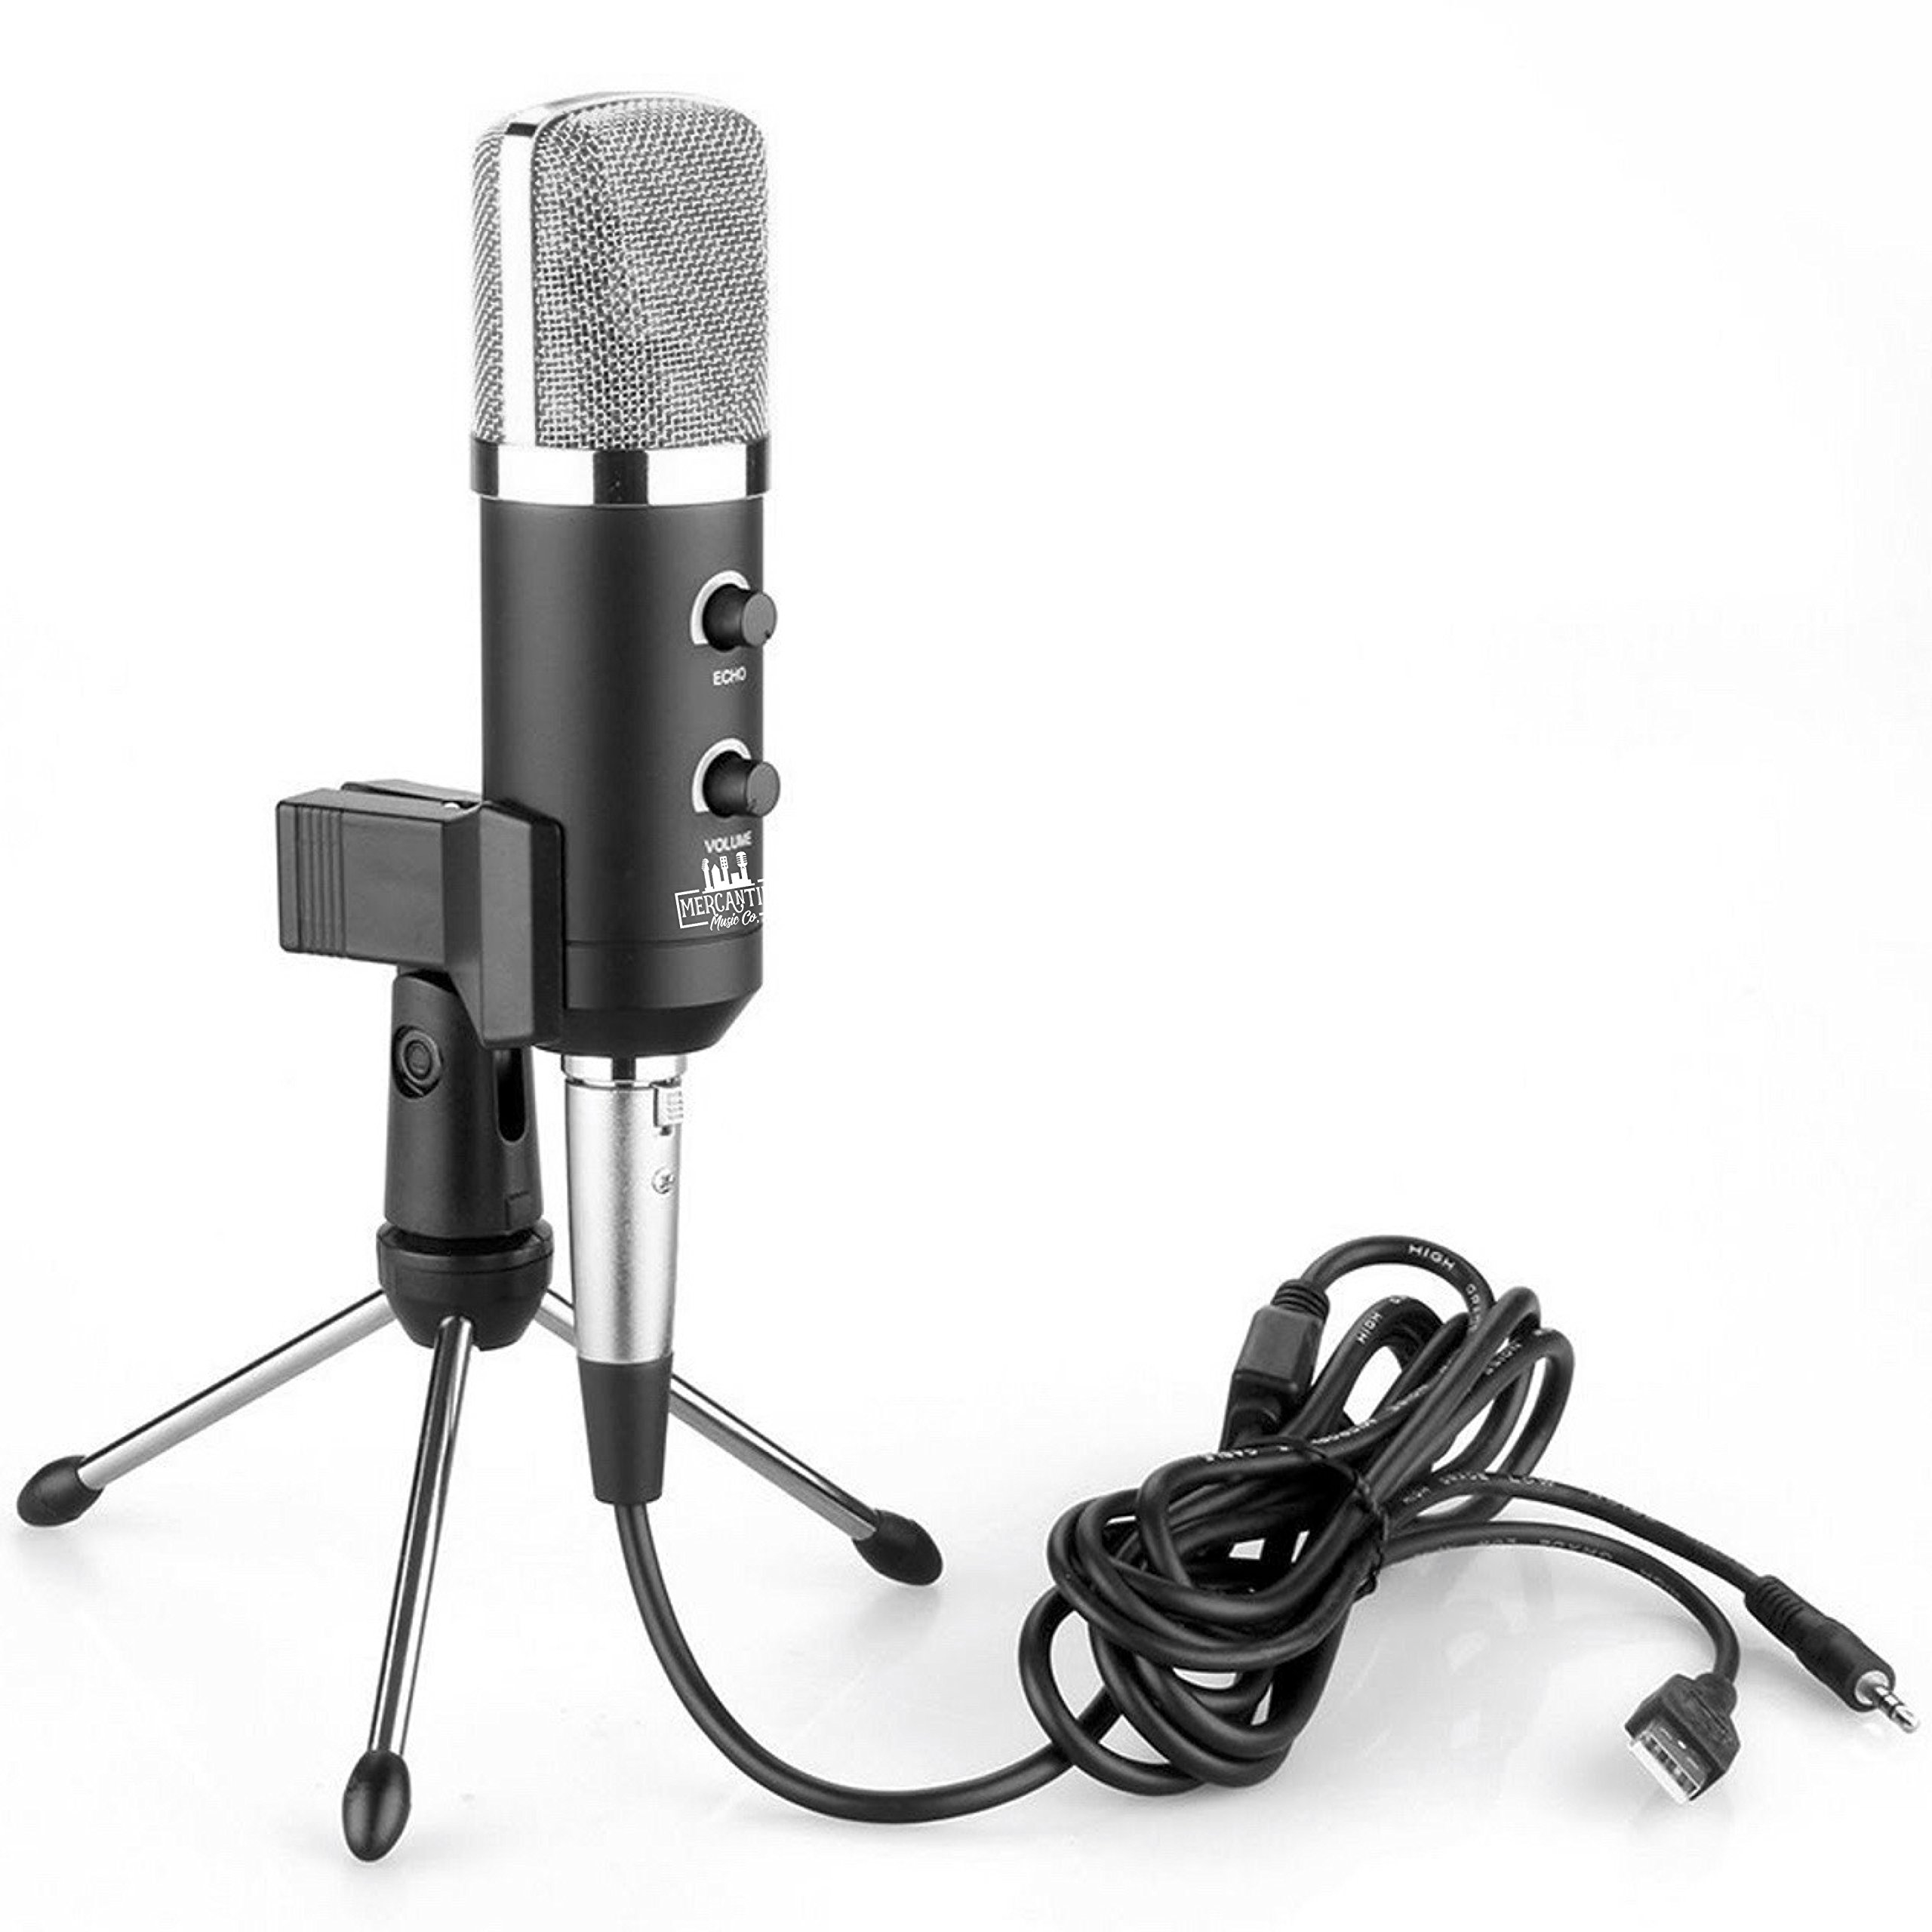 MM-412 - USB Microphone - Mercantile Music Co. - Podcast Kit - Mic Stand, Cable and Clip - Volume and Echo Control - PC and Mac Compatible - Quality Home Recording of Vocals and Instruments by Mercantile Music Co.